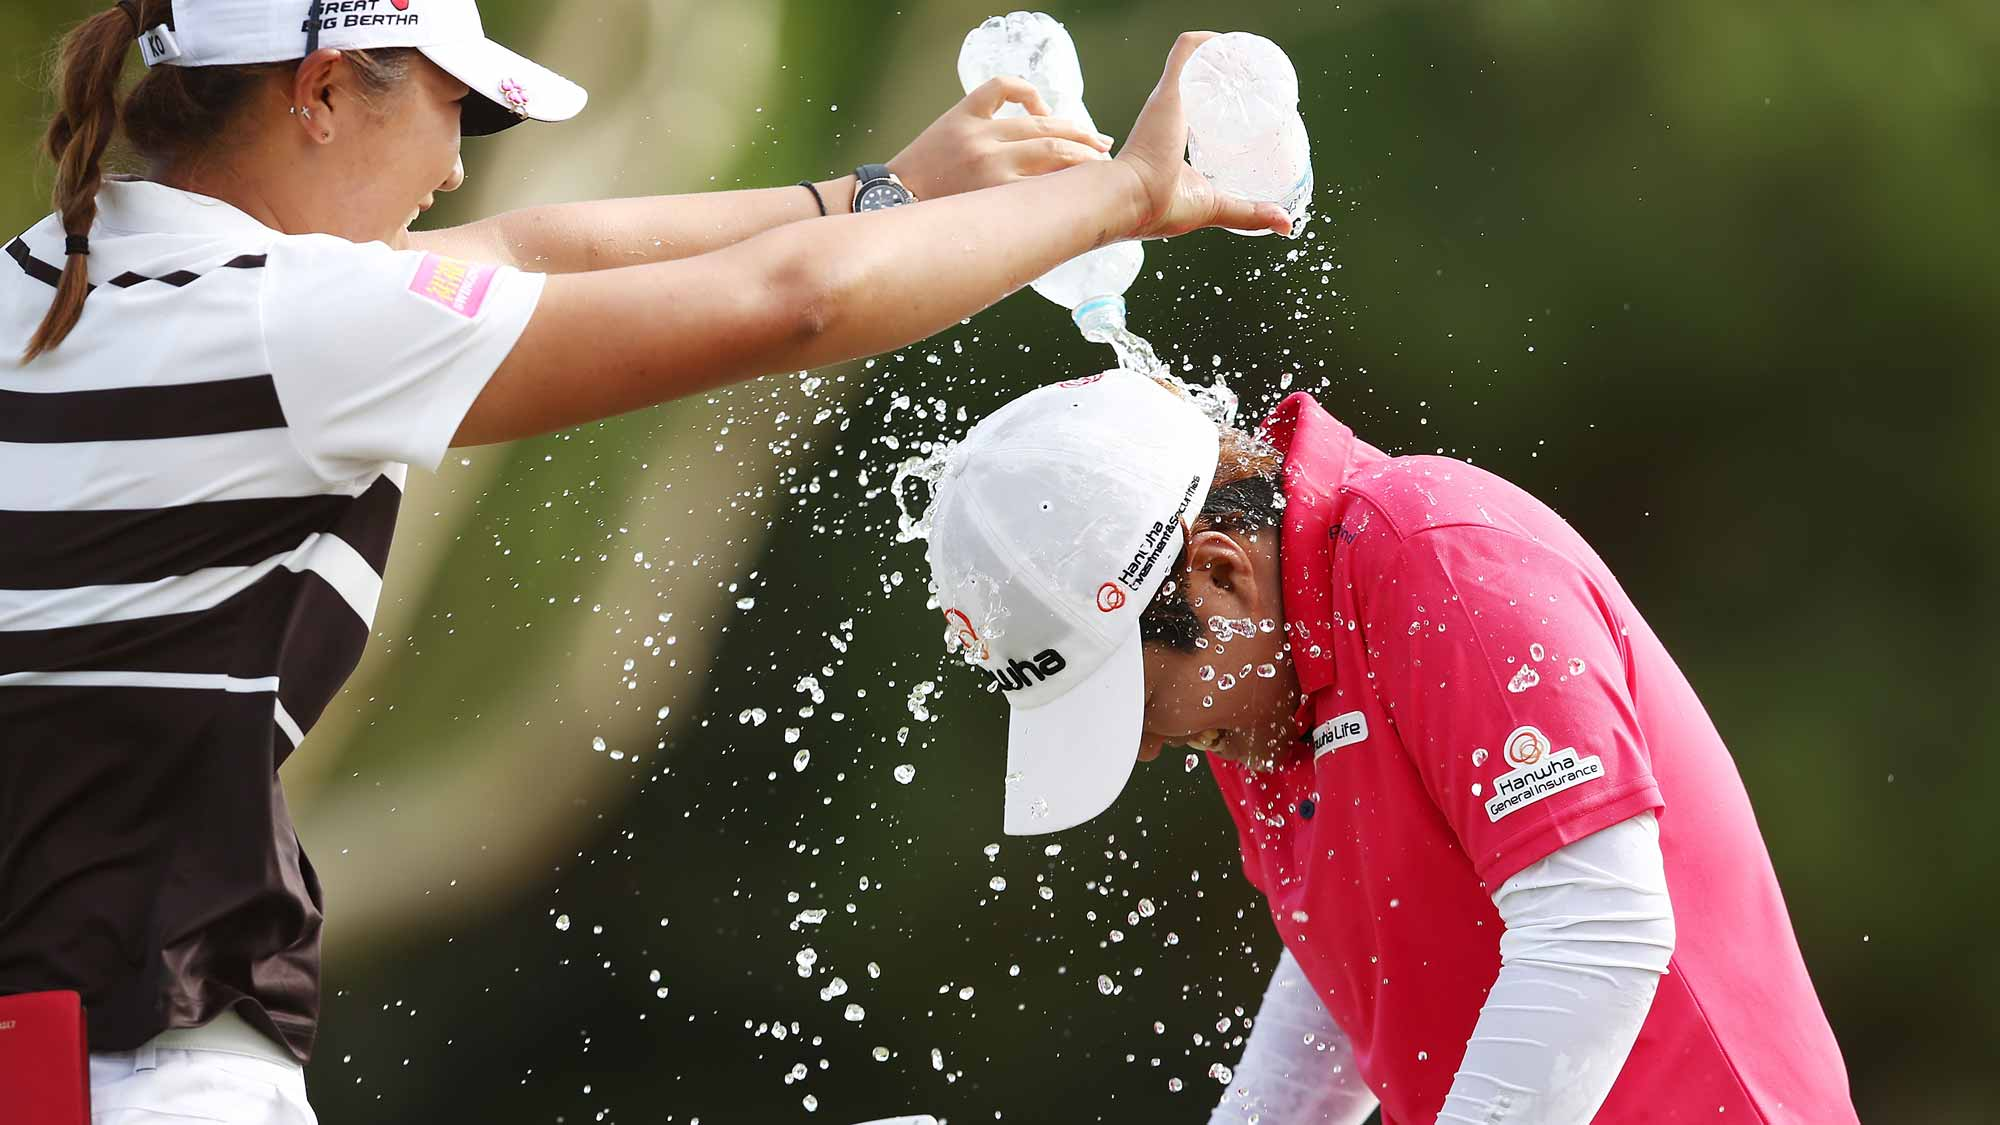 Haru Nomura of Japan runs away from Lydia Ko of New Zealand as Ko tries to dump water on her head in celebration after Nomura won the Women's Australian Open